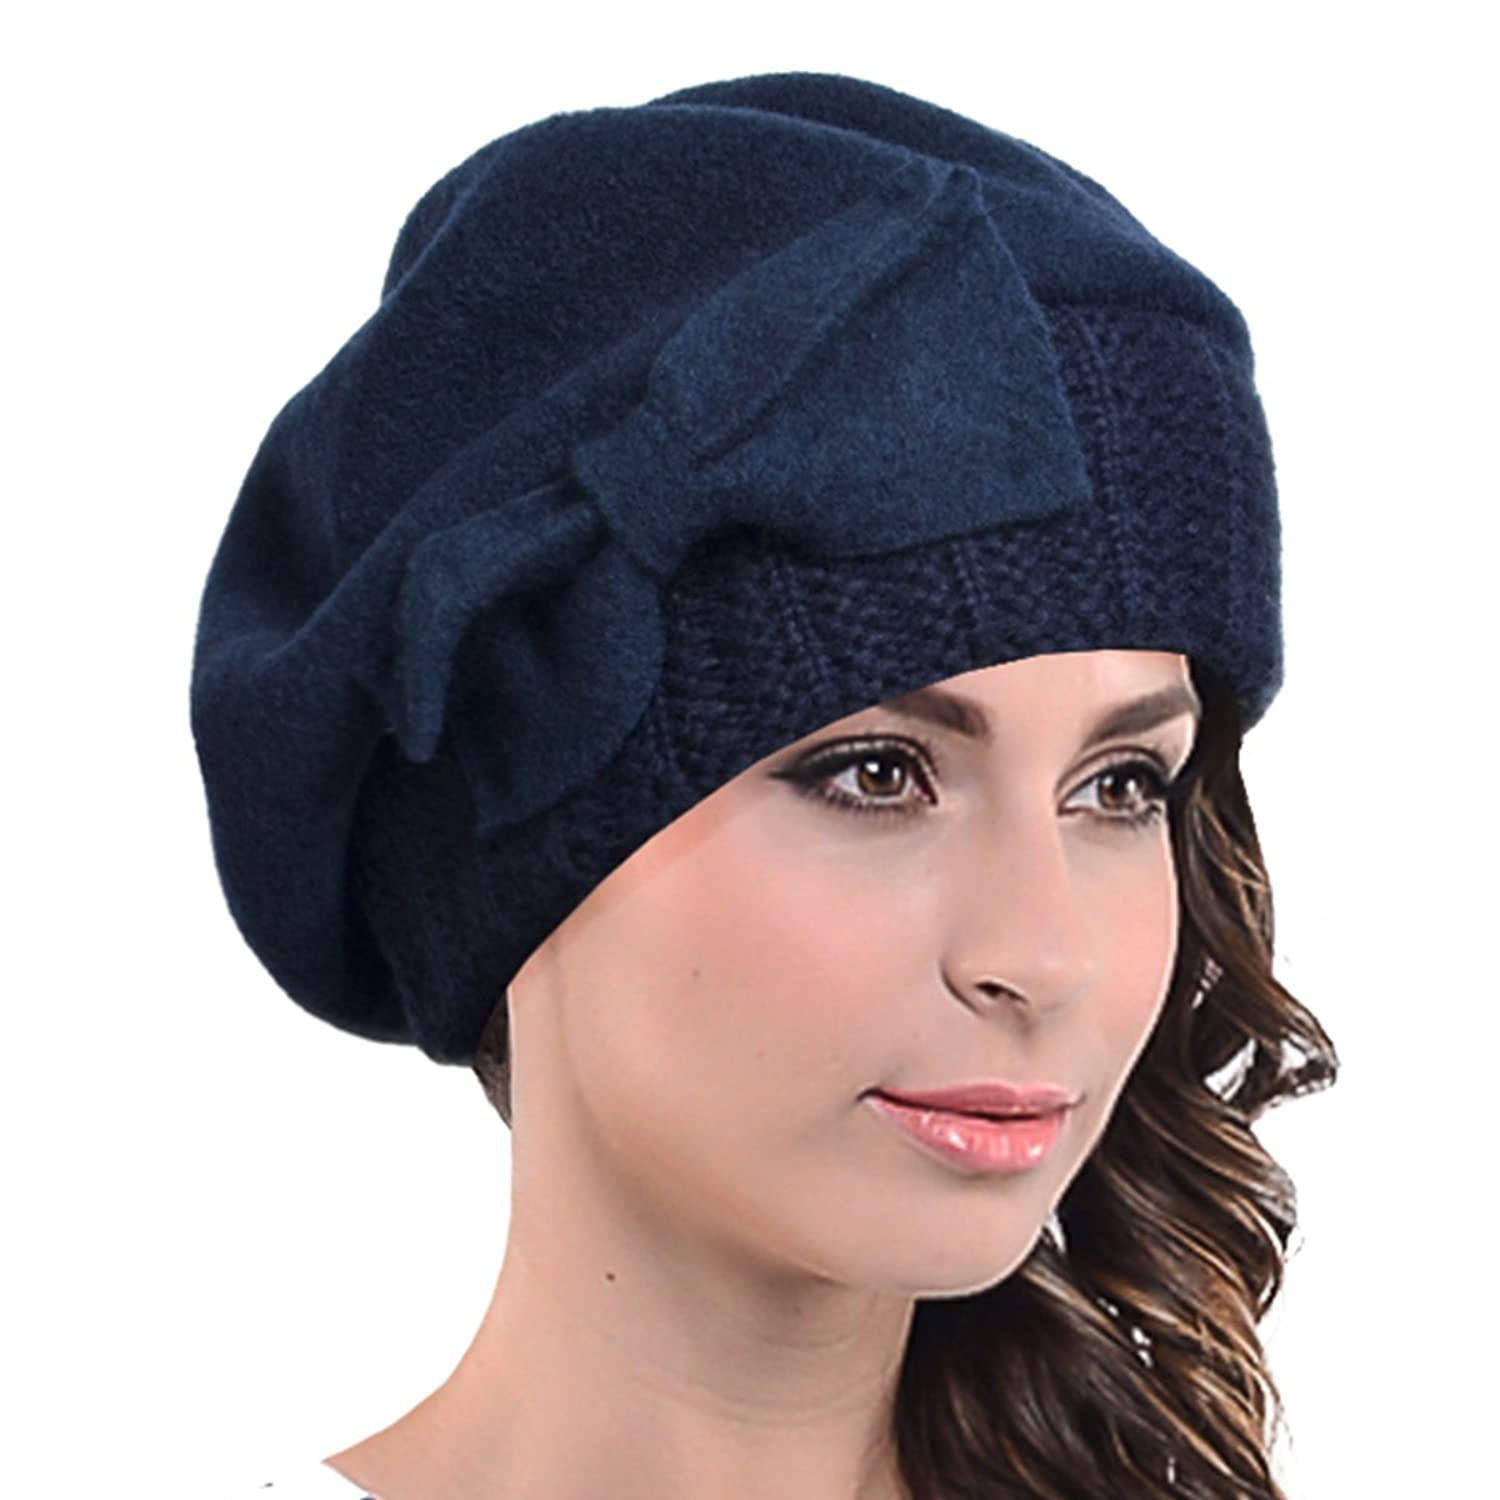 1920s Flapper Headbands Lady French Beret Wool Beret Chic Beanie Winter Hat Jf-br034 $21.99 AT vintagedancer.com